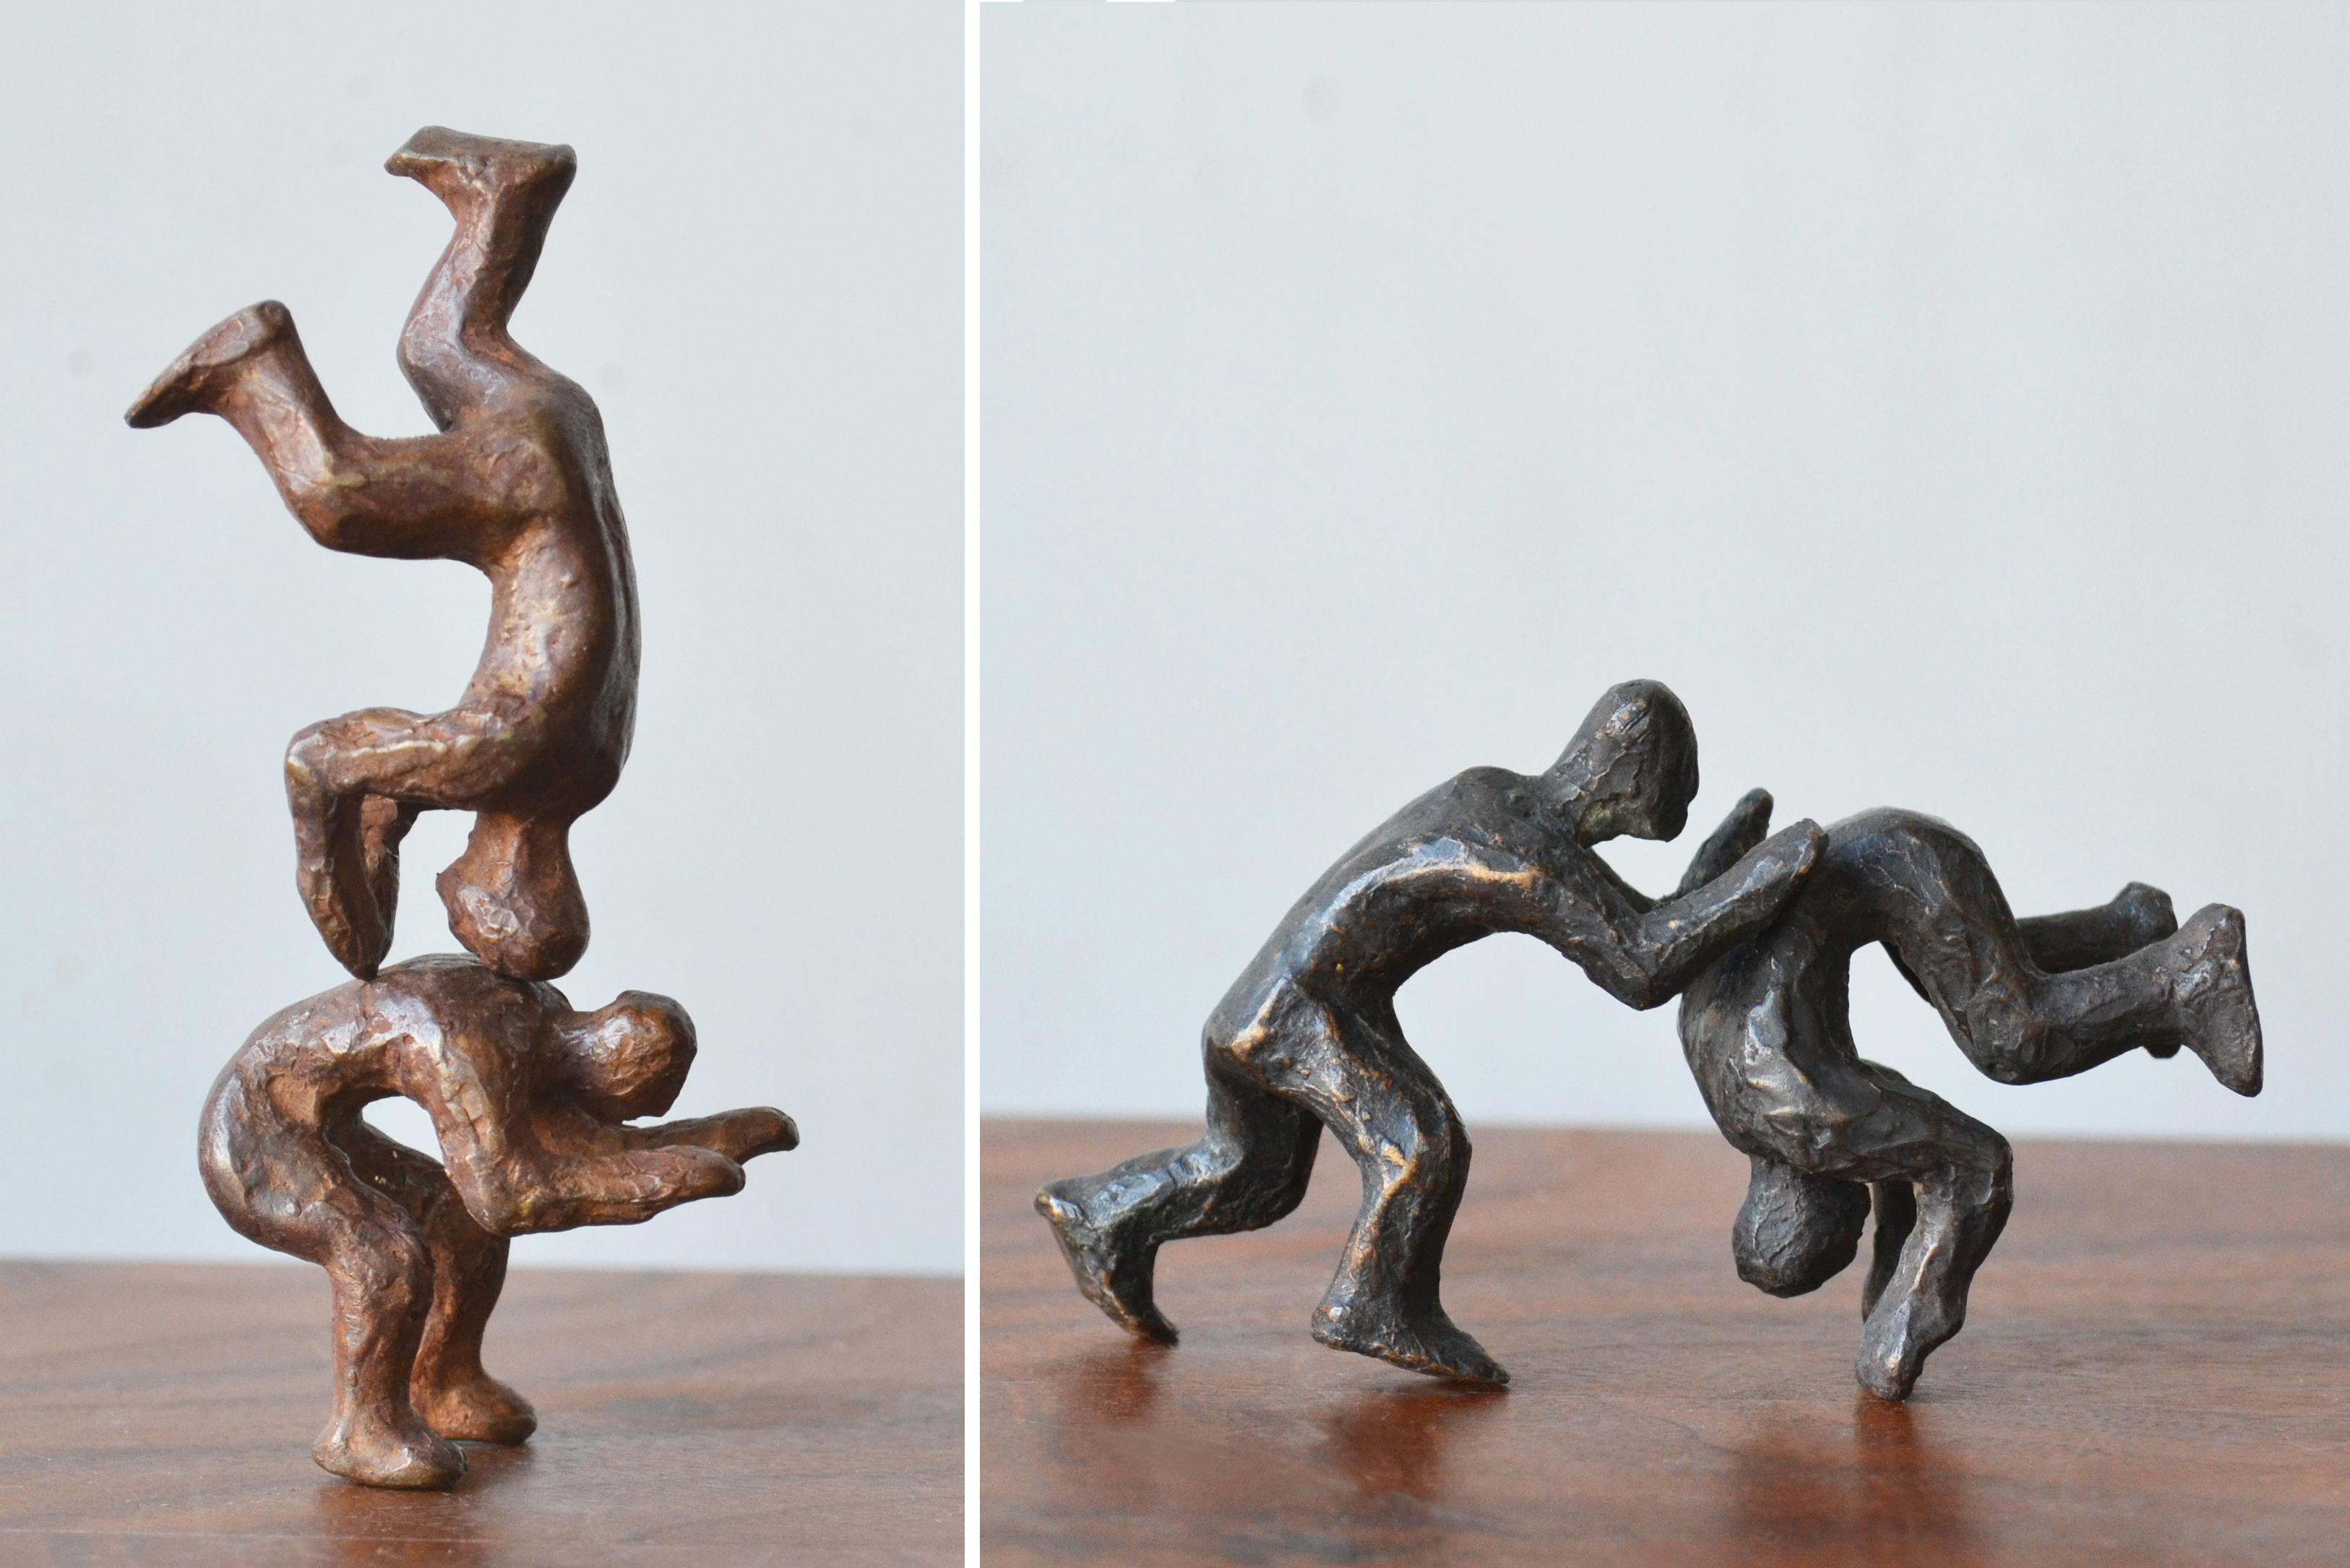 Why Fight When You Can Play? -4 Pairs of playful interactive bronze figures